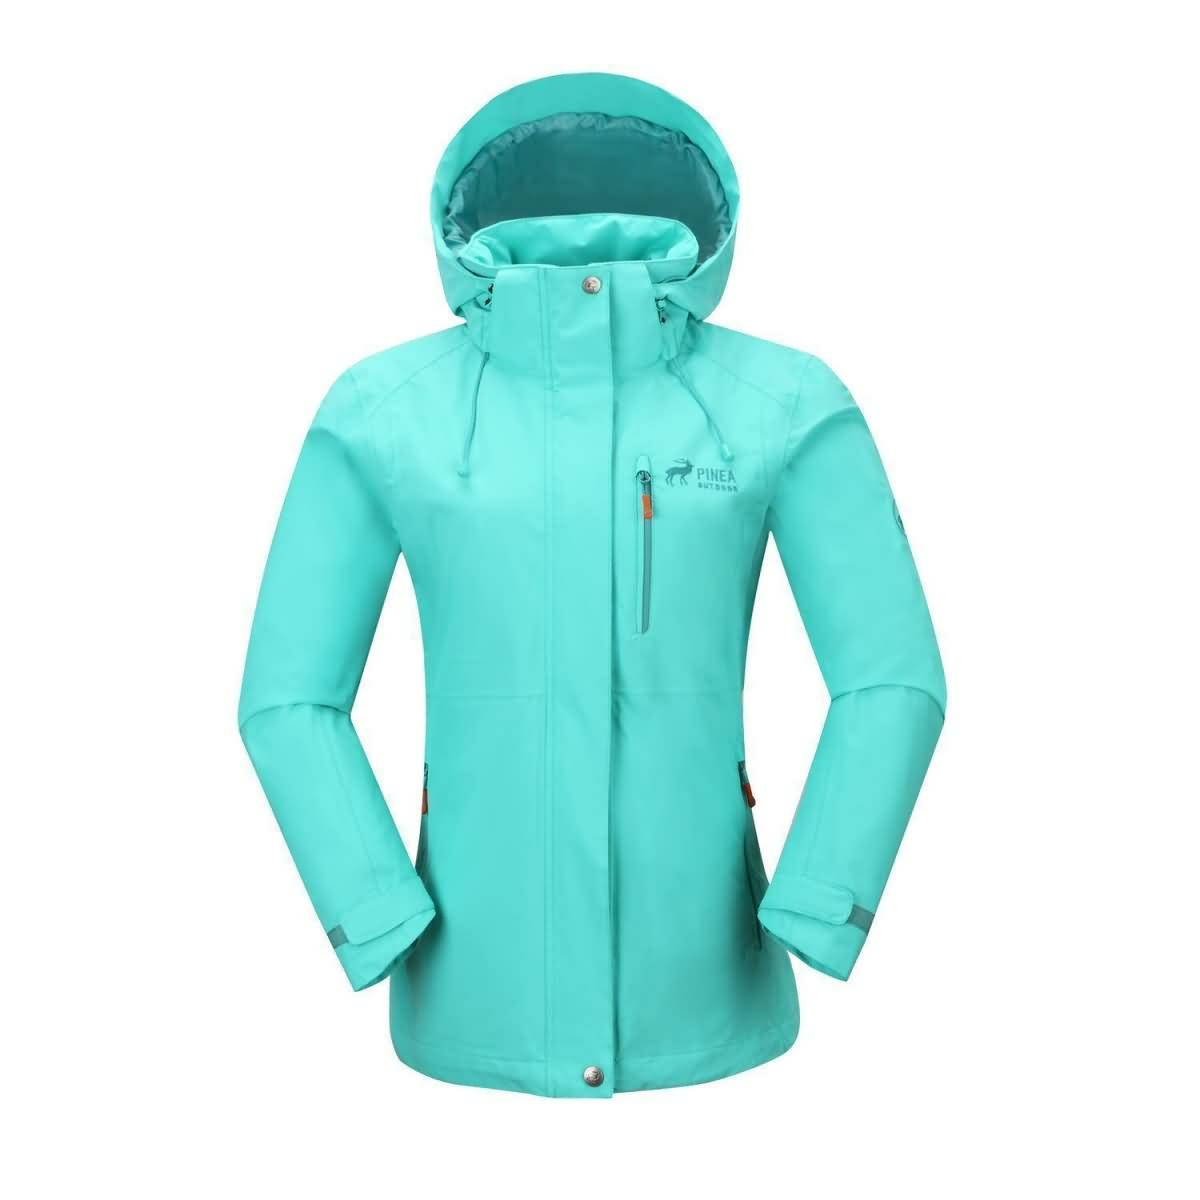 Pinea jacke outdoor